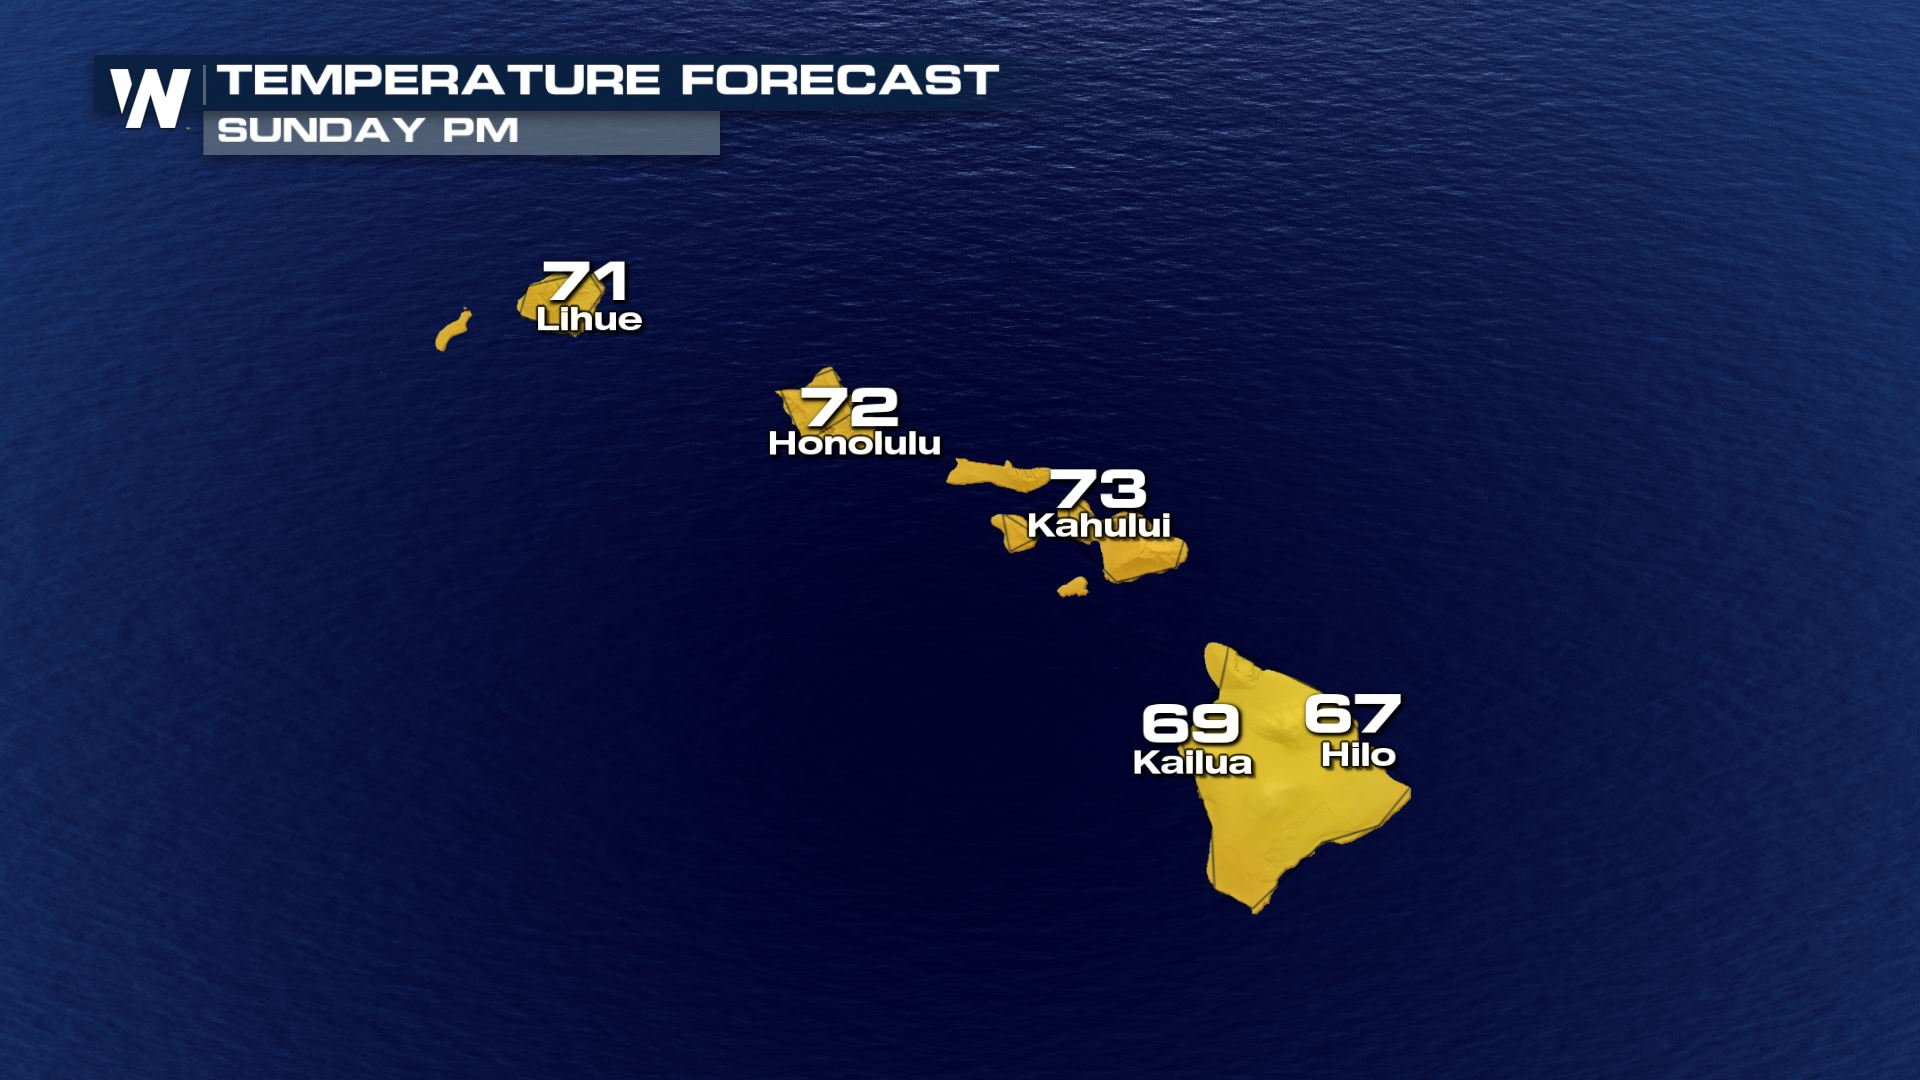 Christmas Forecast for Alaska and Hawaii - WeatherNation